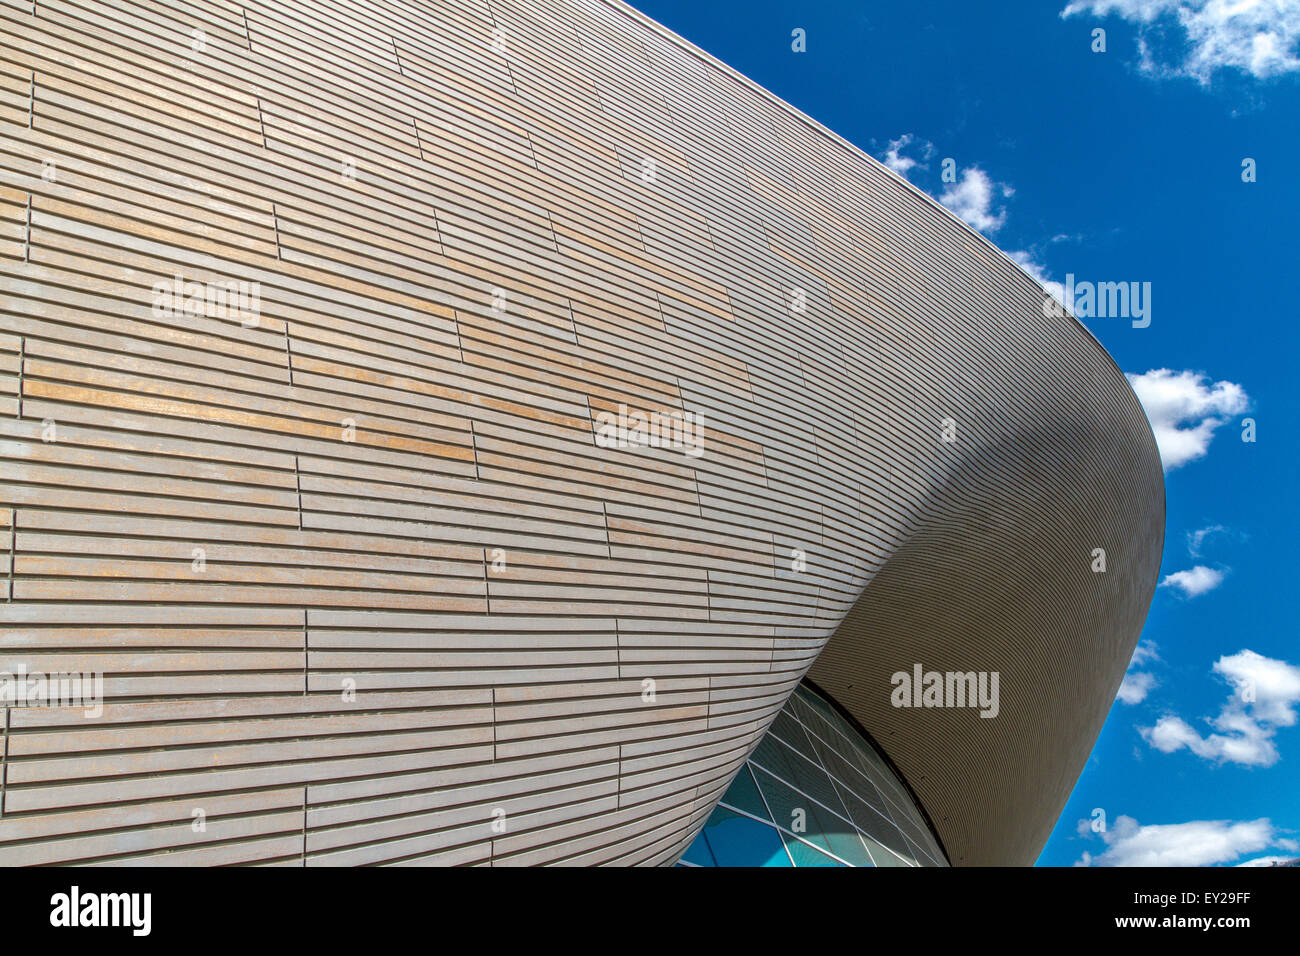 Graceful Curves of the London Aquatic Centre designed by Zaha Hadid - Stock Image